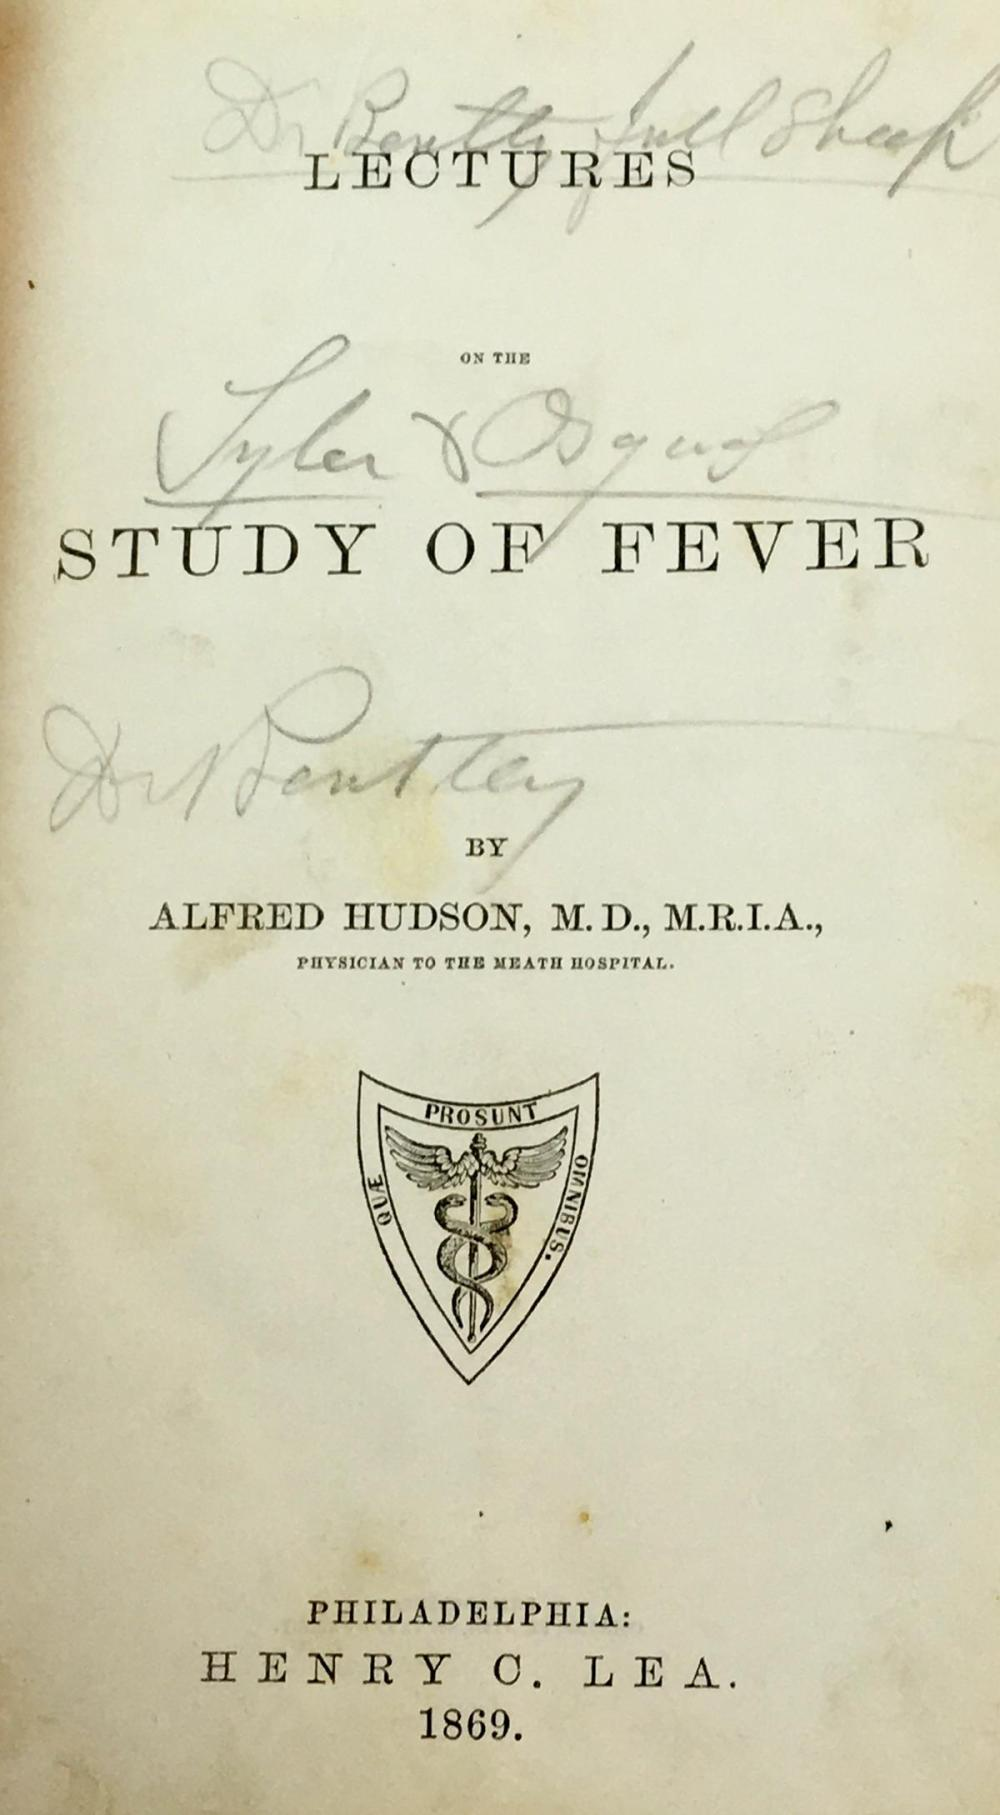 1869 Lectures on the Study of Fever by Alfred Hudson, MD. Leather Bound Book